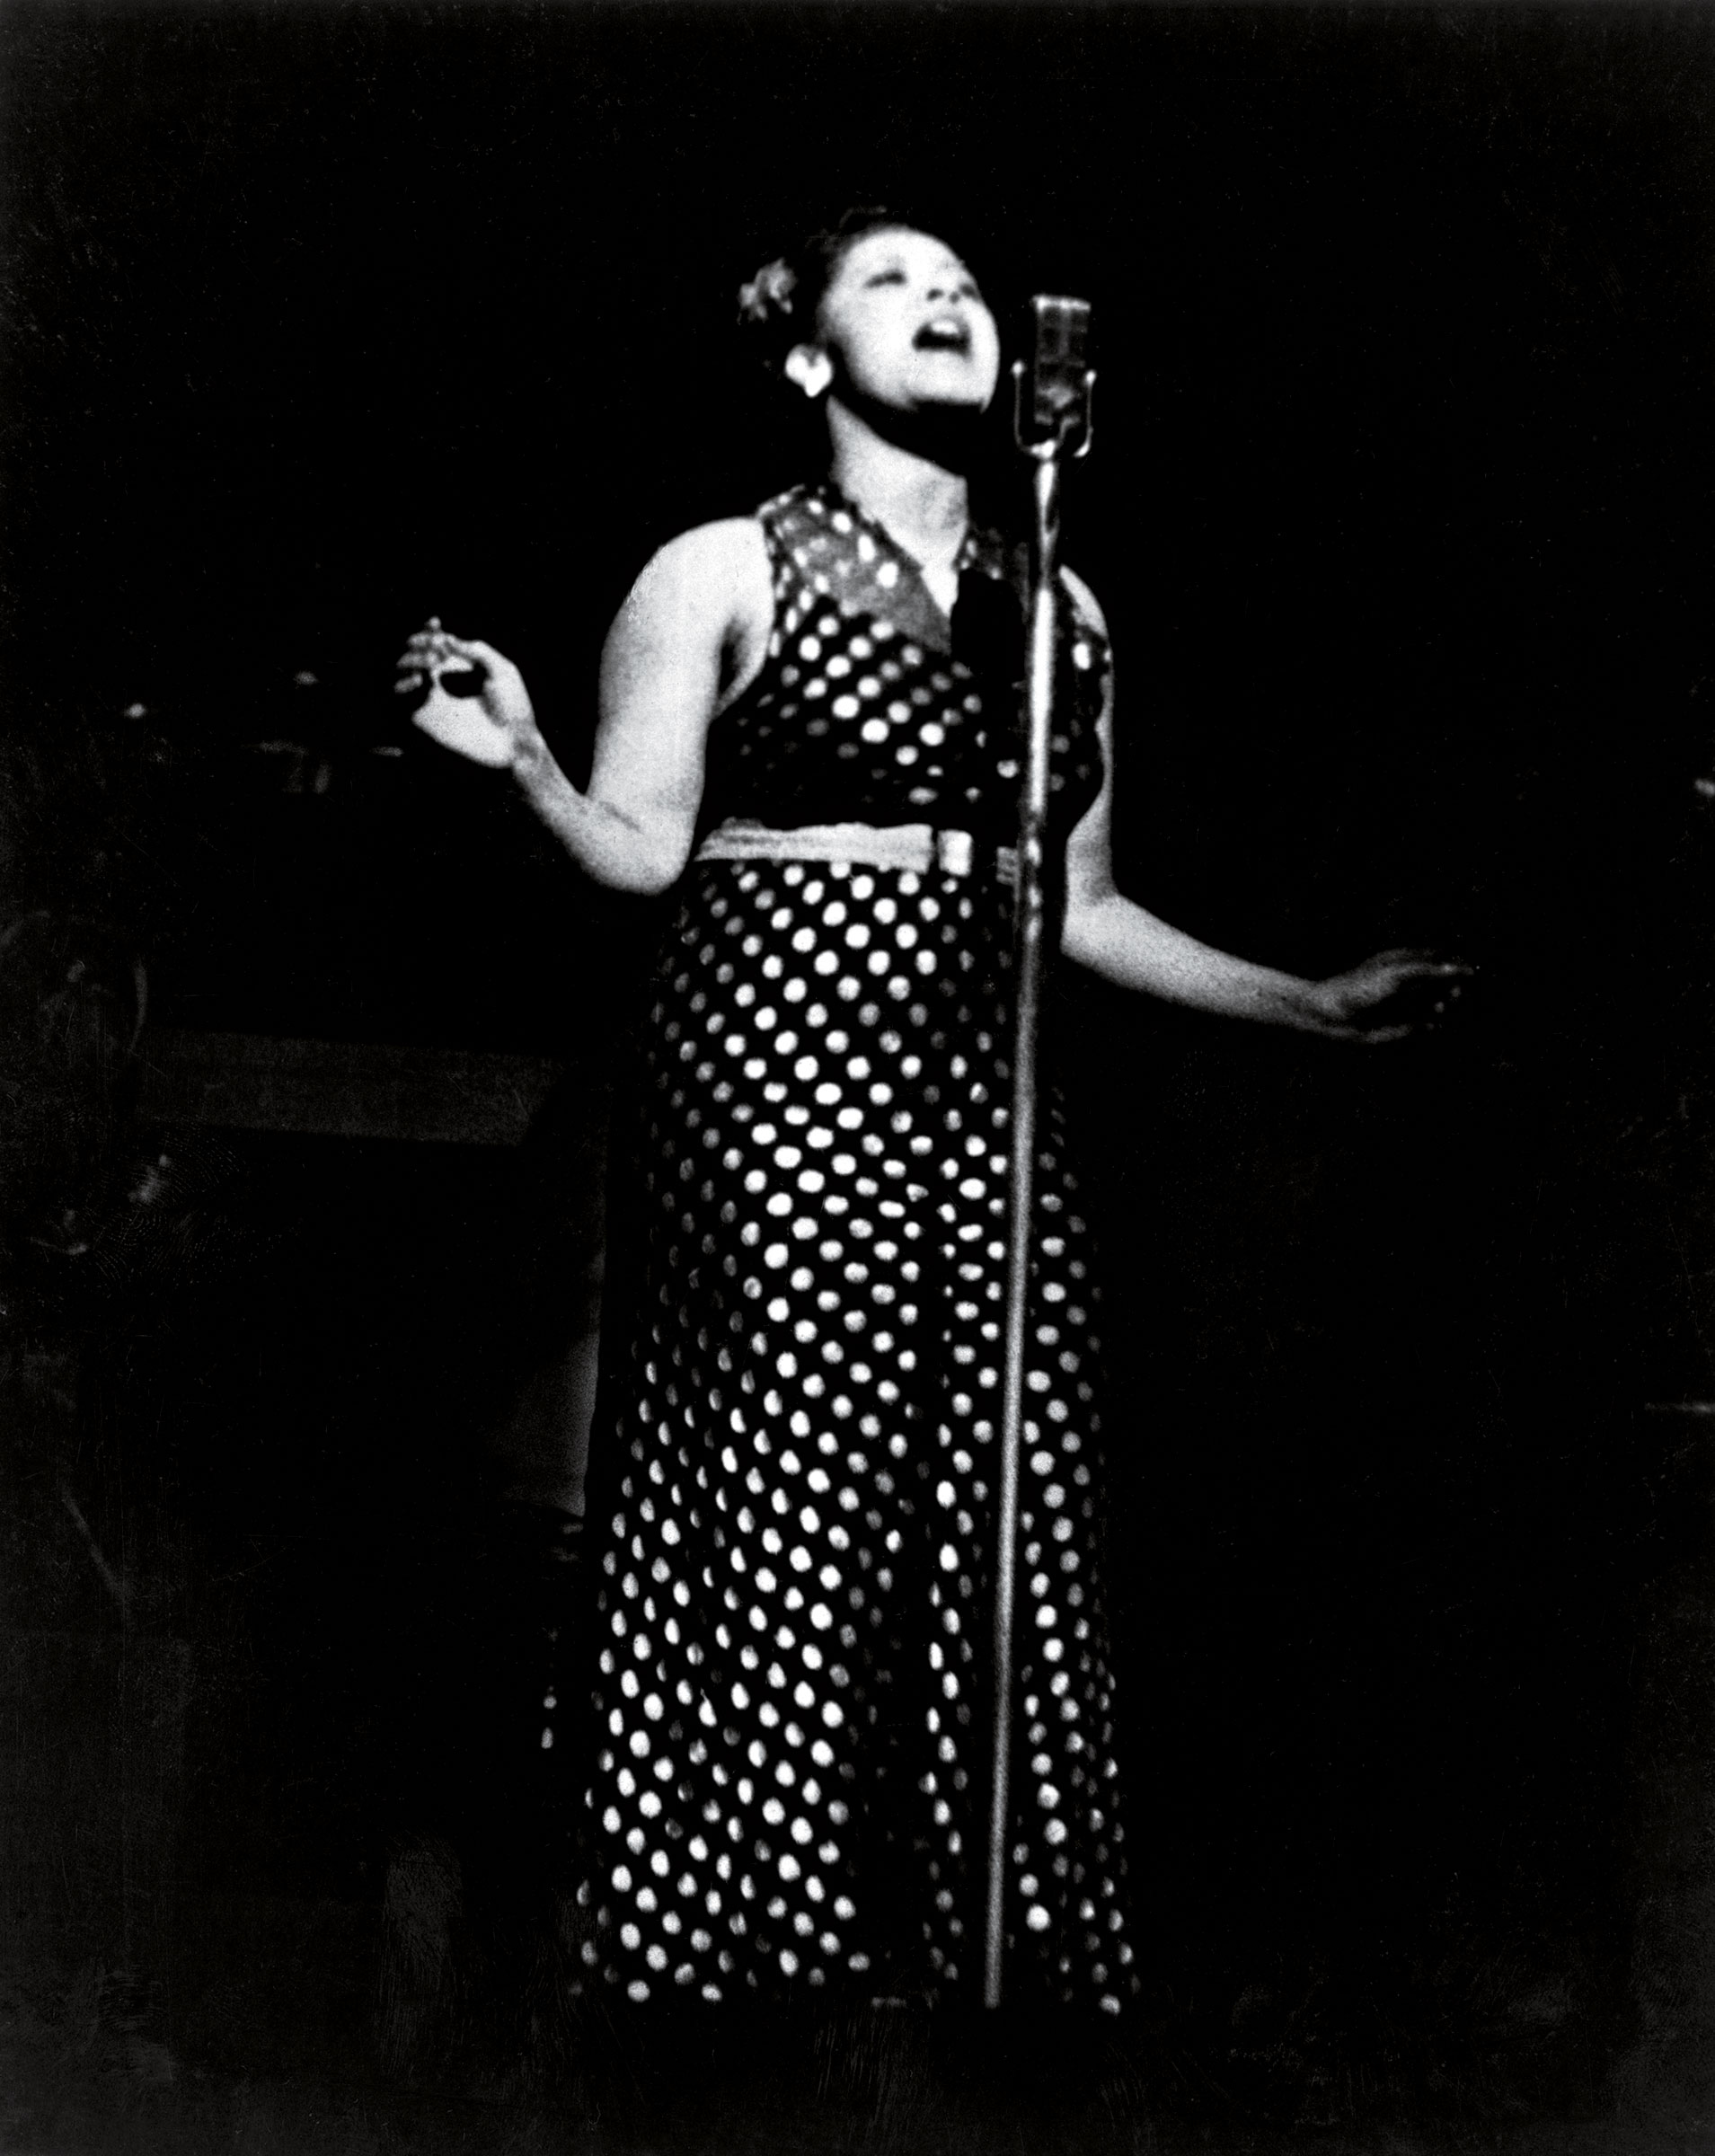 Holiday, performing at the Apollo Theater in 1937.